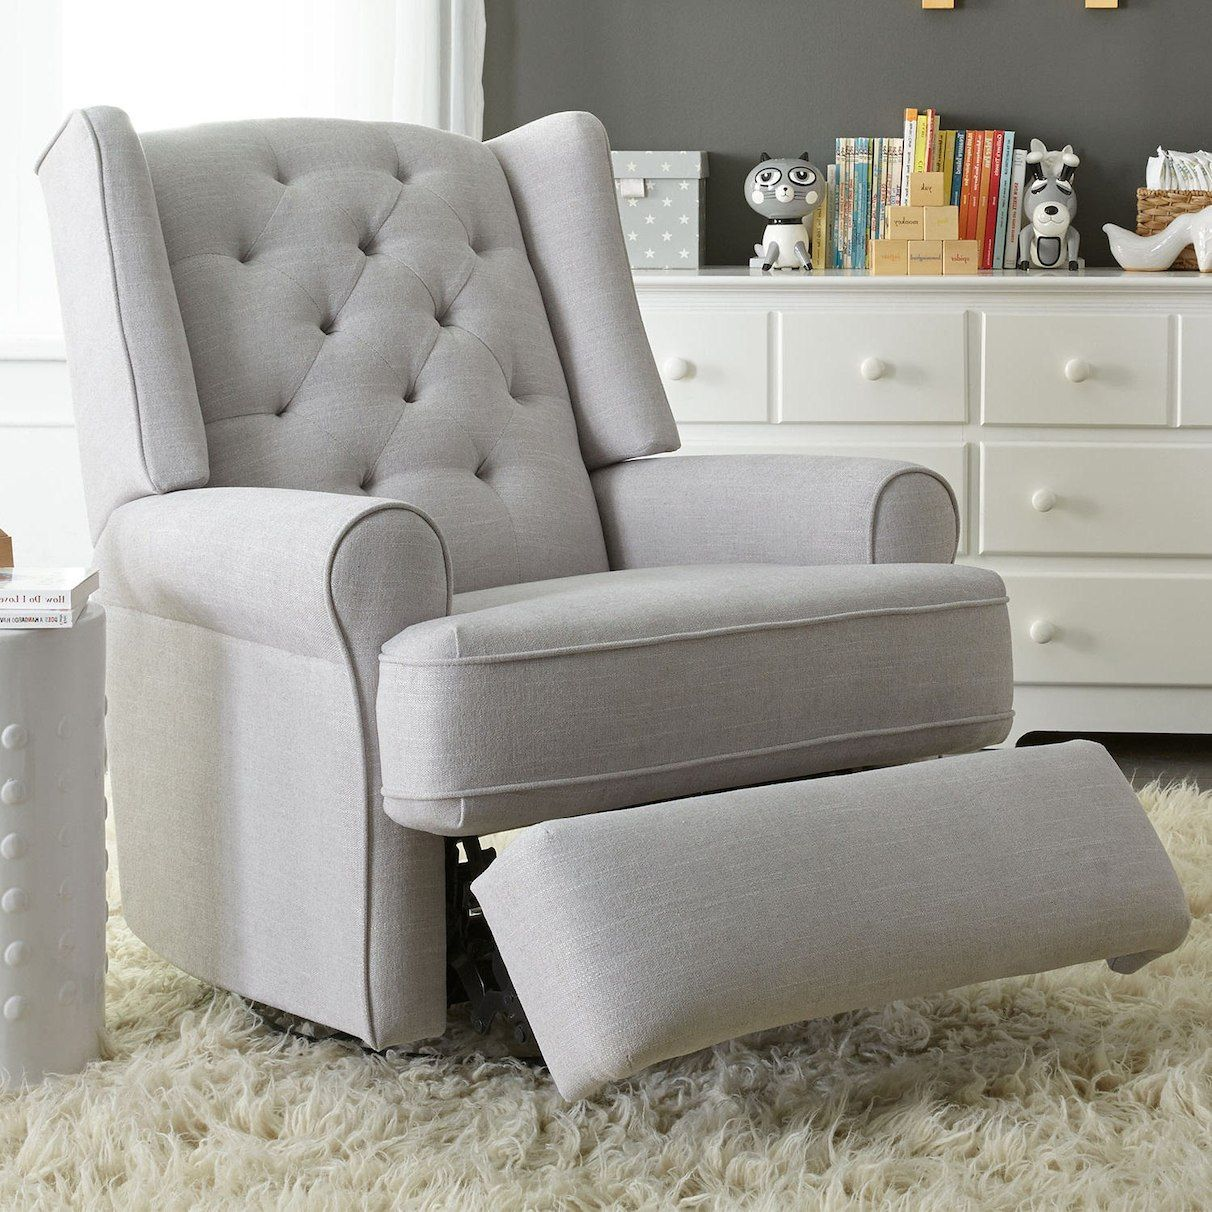 Best Chair For Nursery Customized Directors Covers Chairs Finley Swivel Glider Recliner Gray Tweed Robin Baby